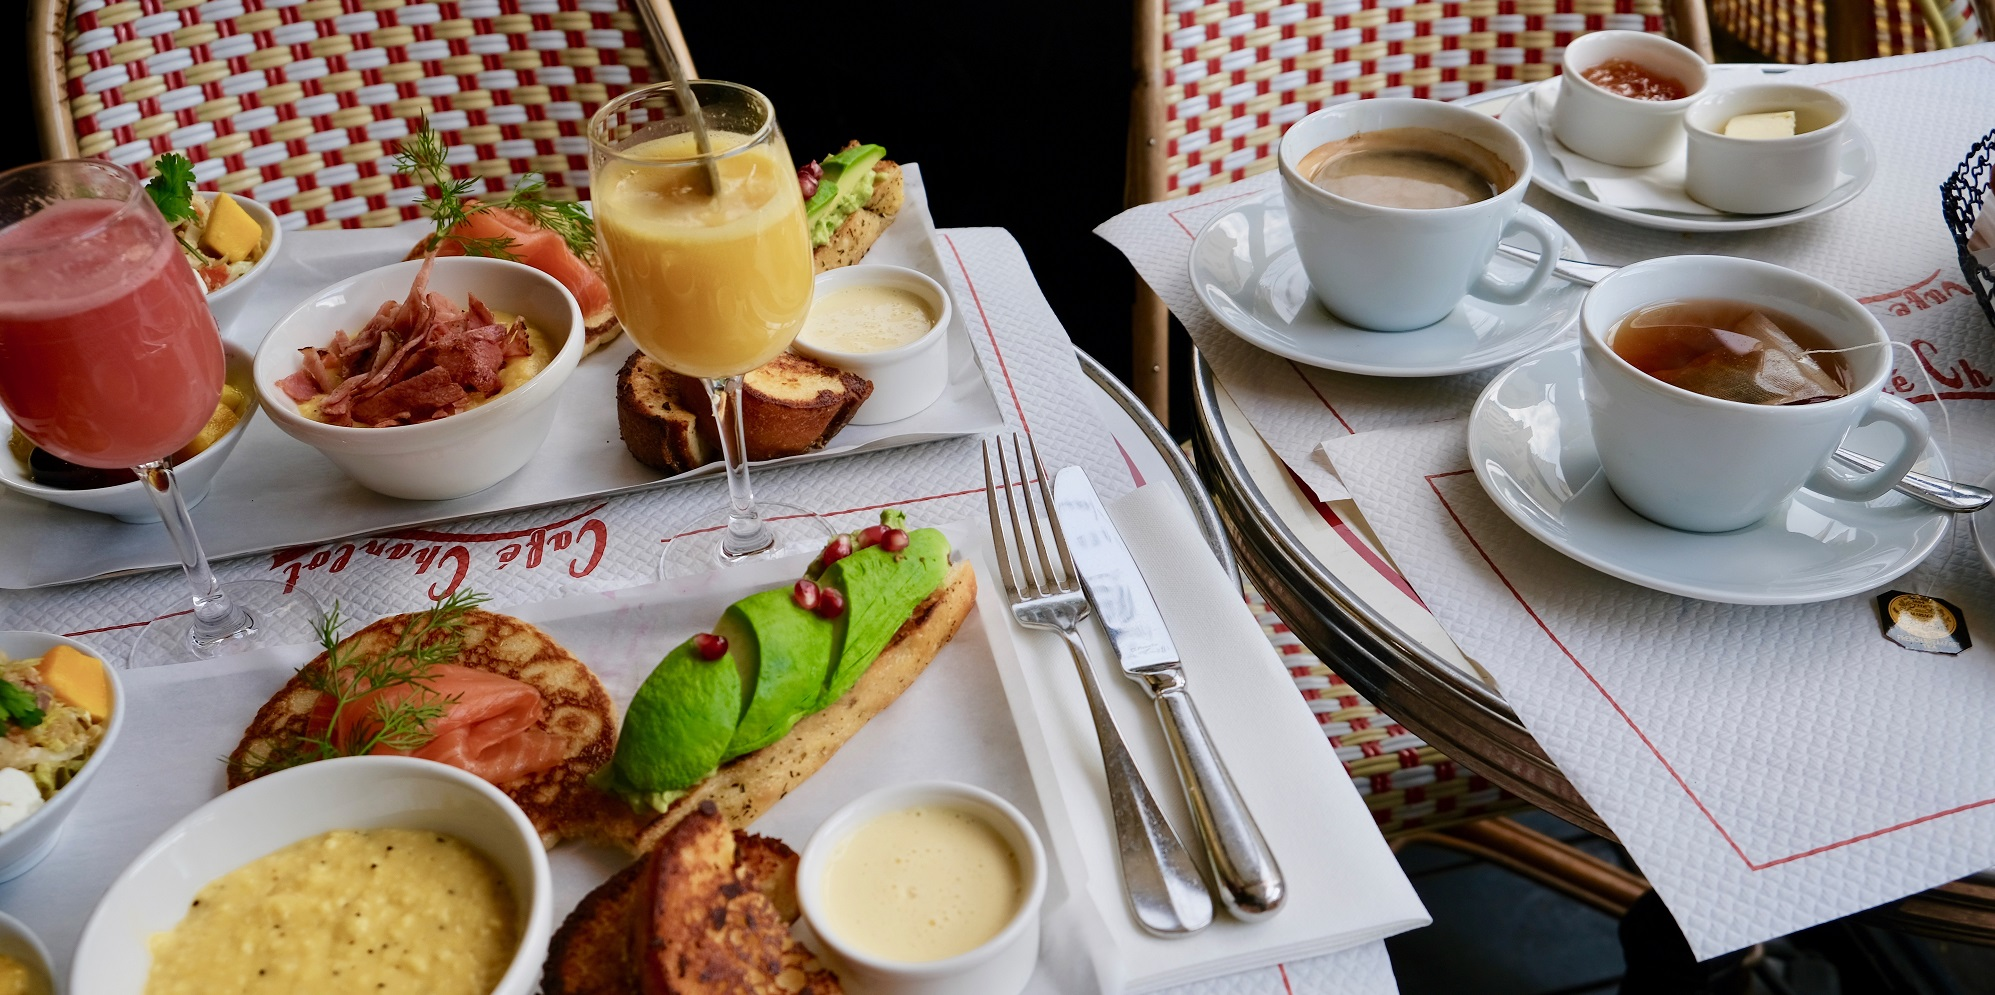 Brunch Café Charlot (75003 Paris)